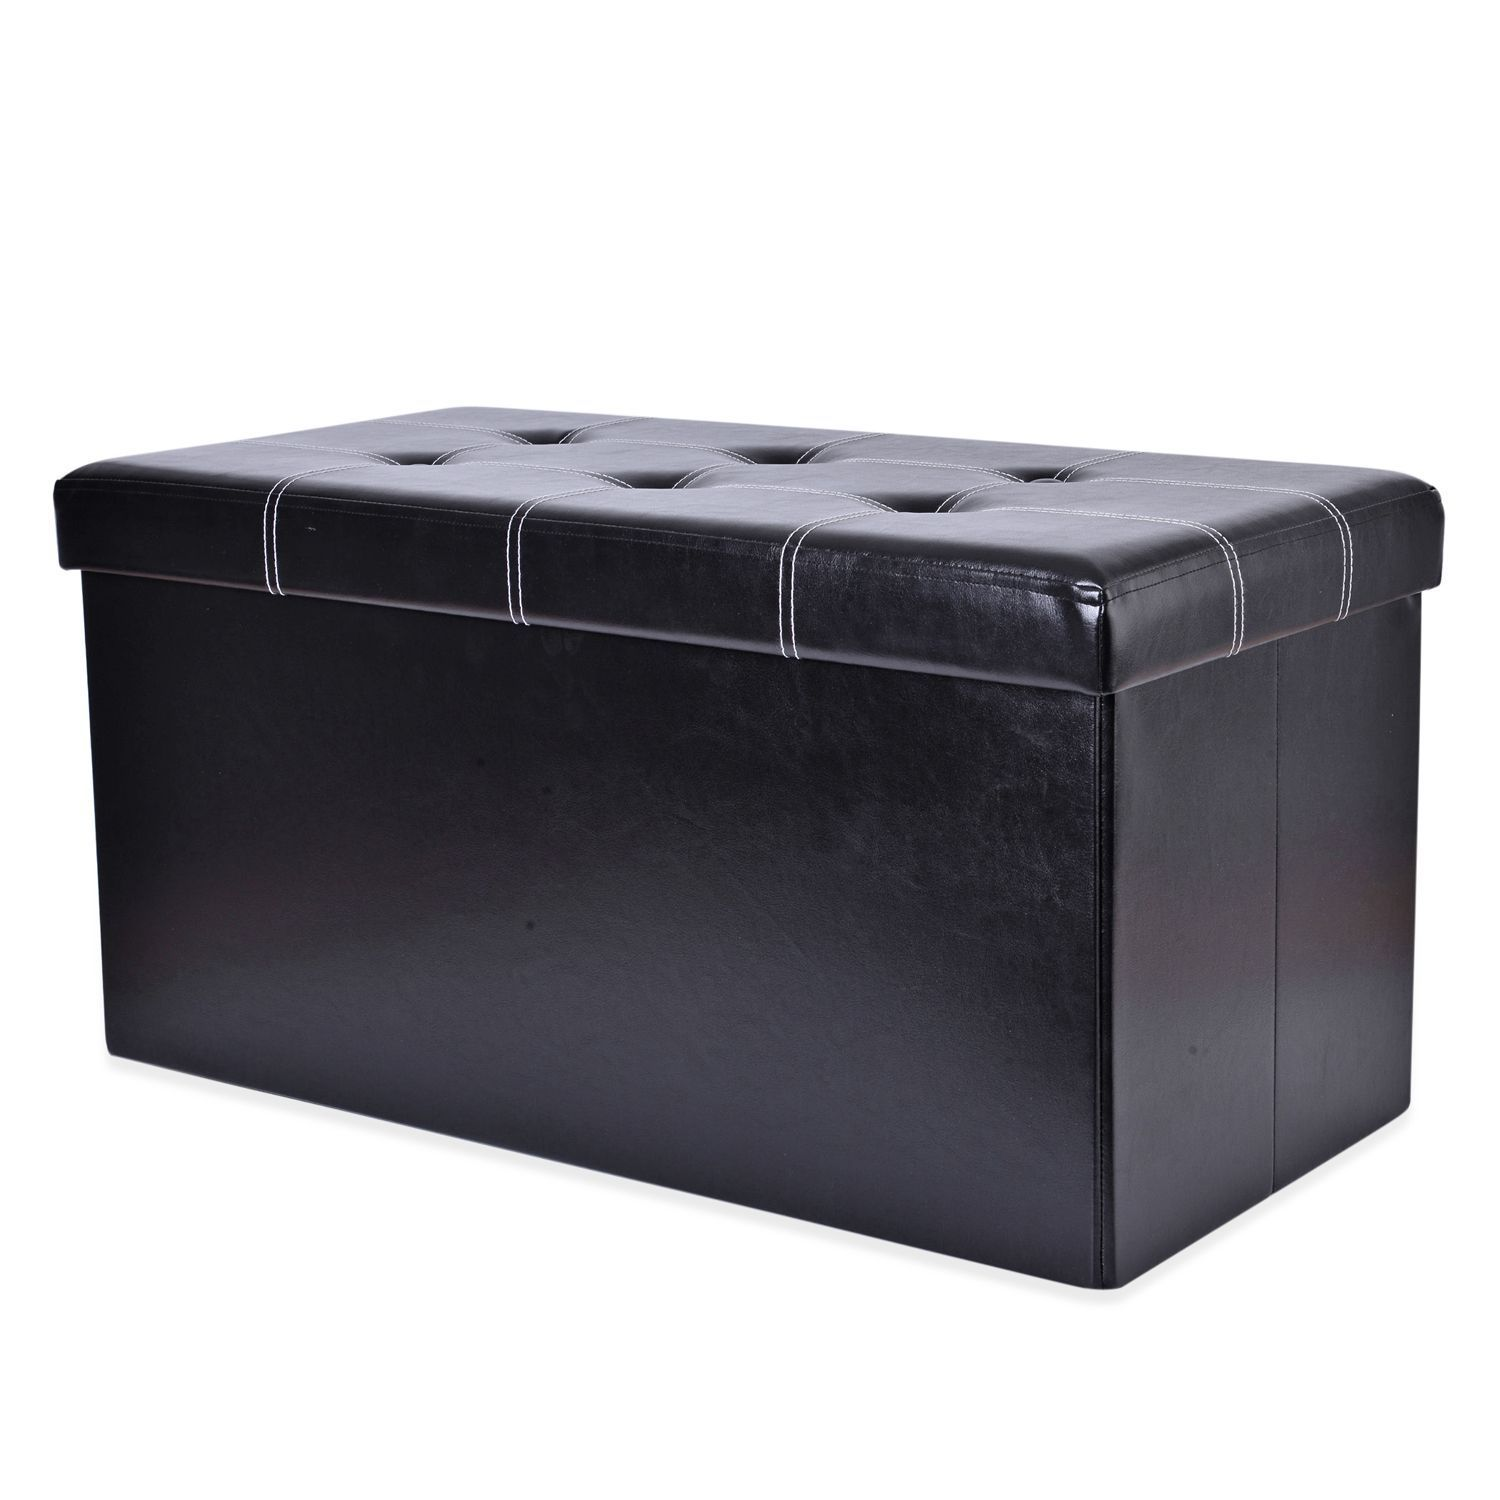 Doorbuster Black Faux Leather Collapsible Storage Bench